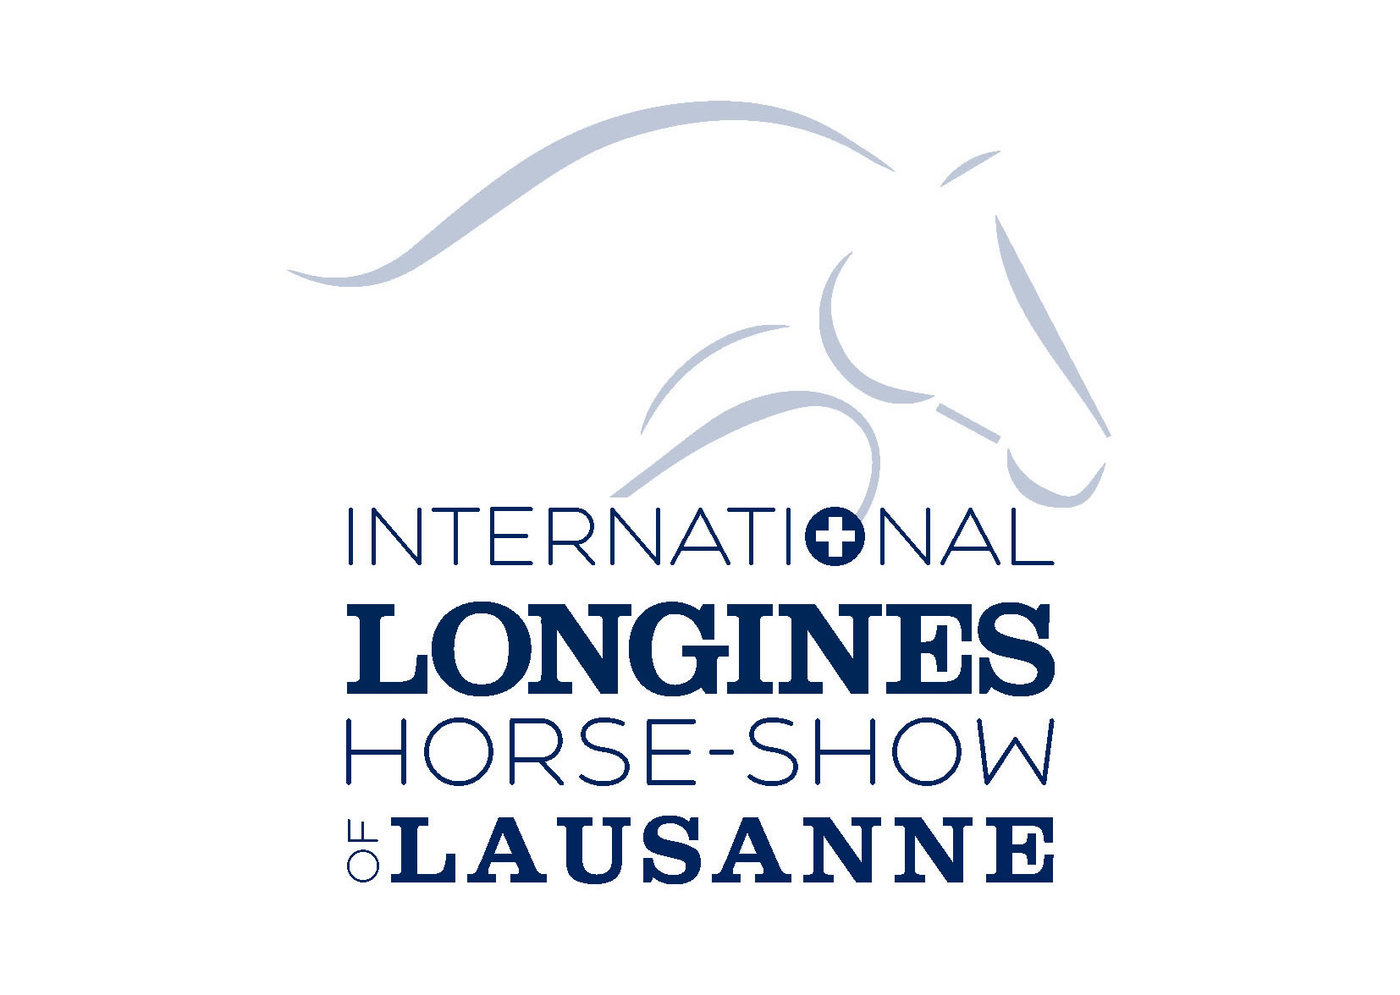 Longines Show Jumping Event: Longines becomes the Title Partner and Official Timekeeper of the International Longines Horse-Show of Lausanne 1